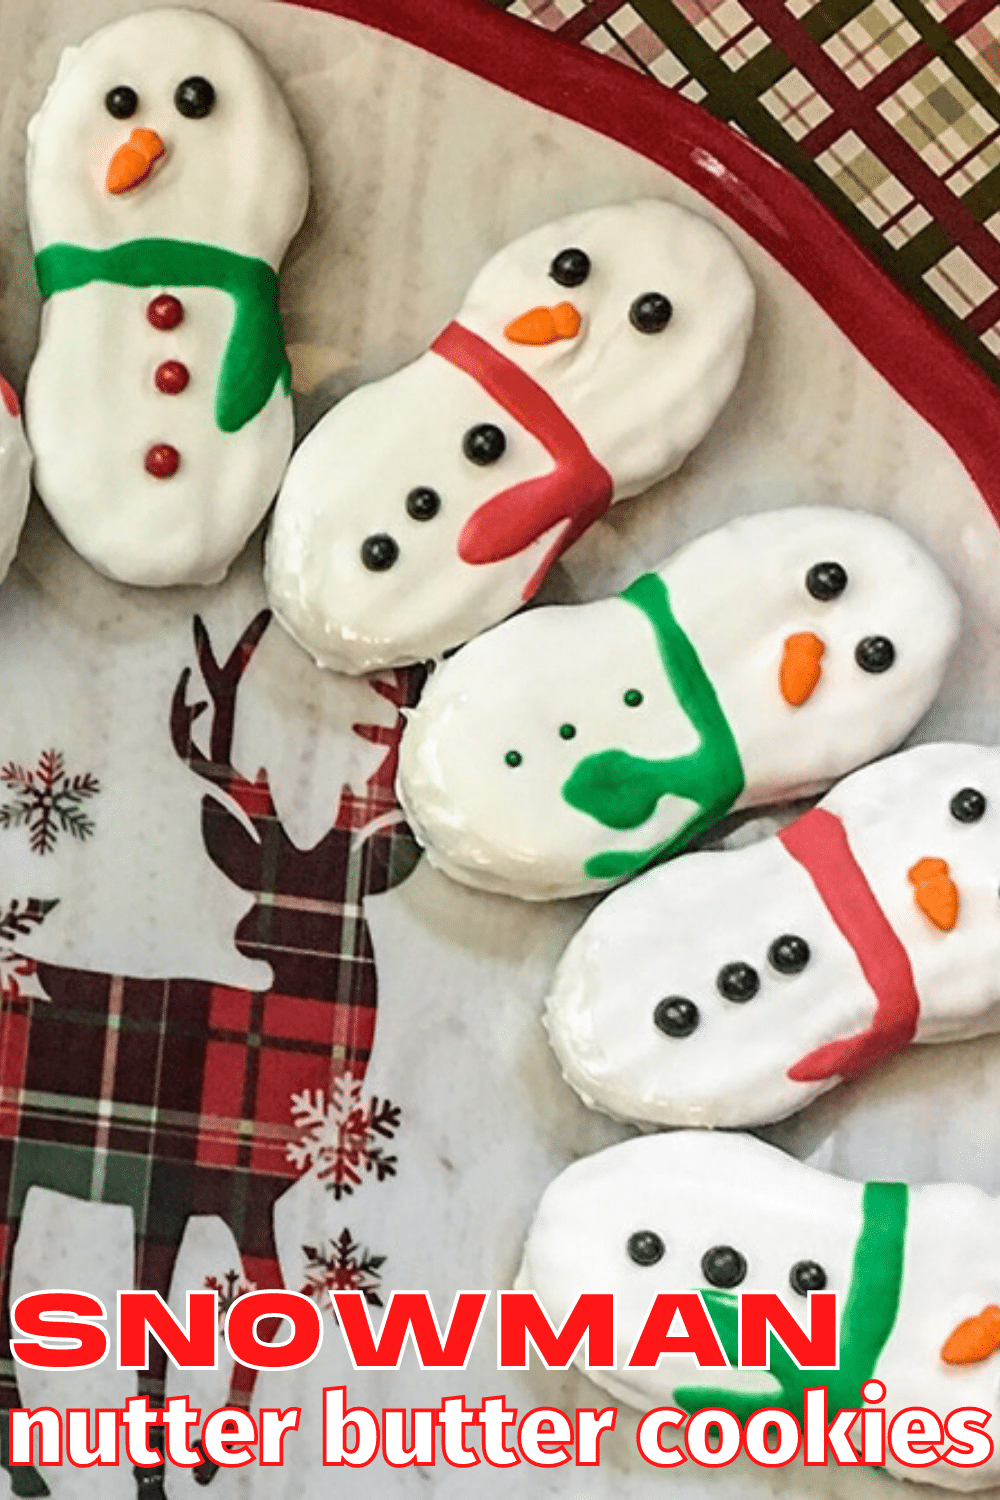 These Snowman Nutter Butter Cookies are an adorable winter treat and they're super easy to make! #nutterbutter #funfoodforkids #wintertreat via @wondermomwannab